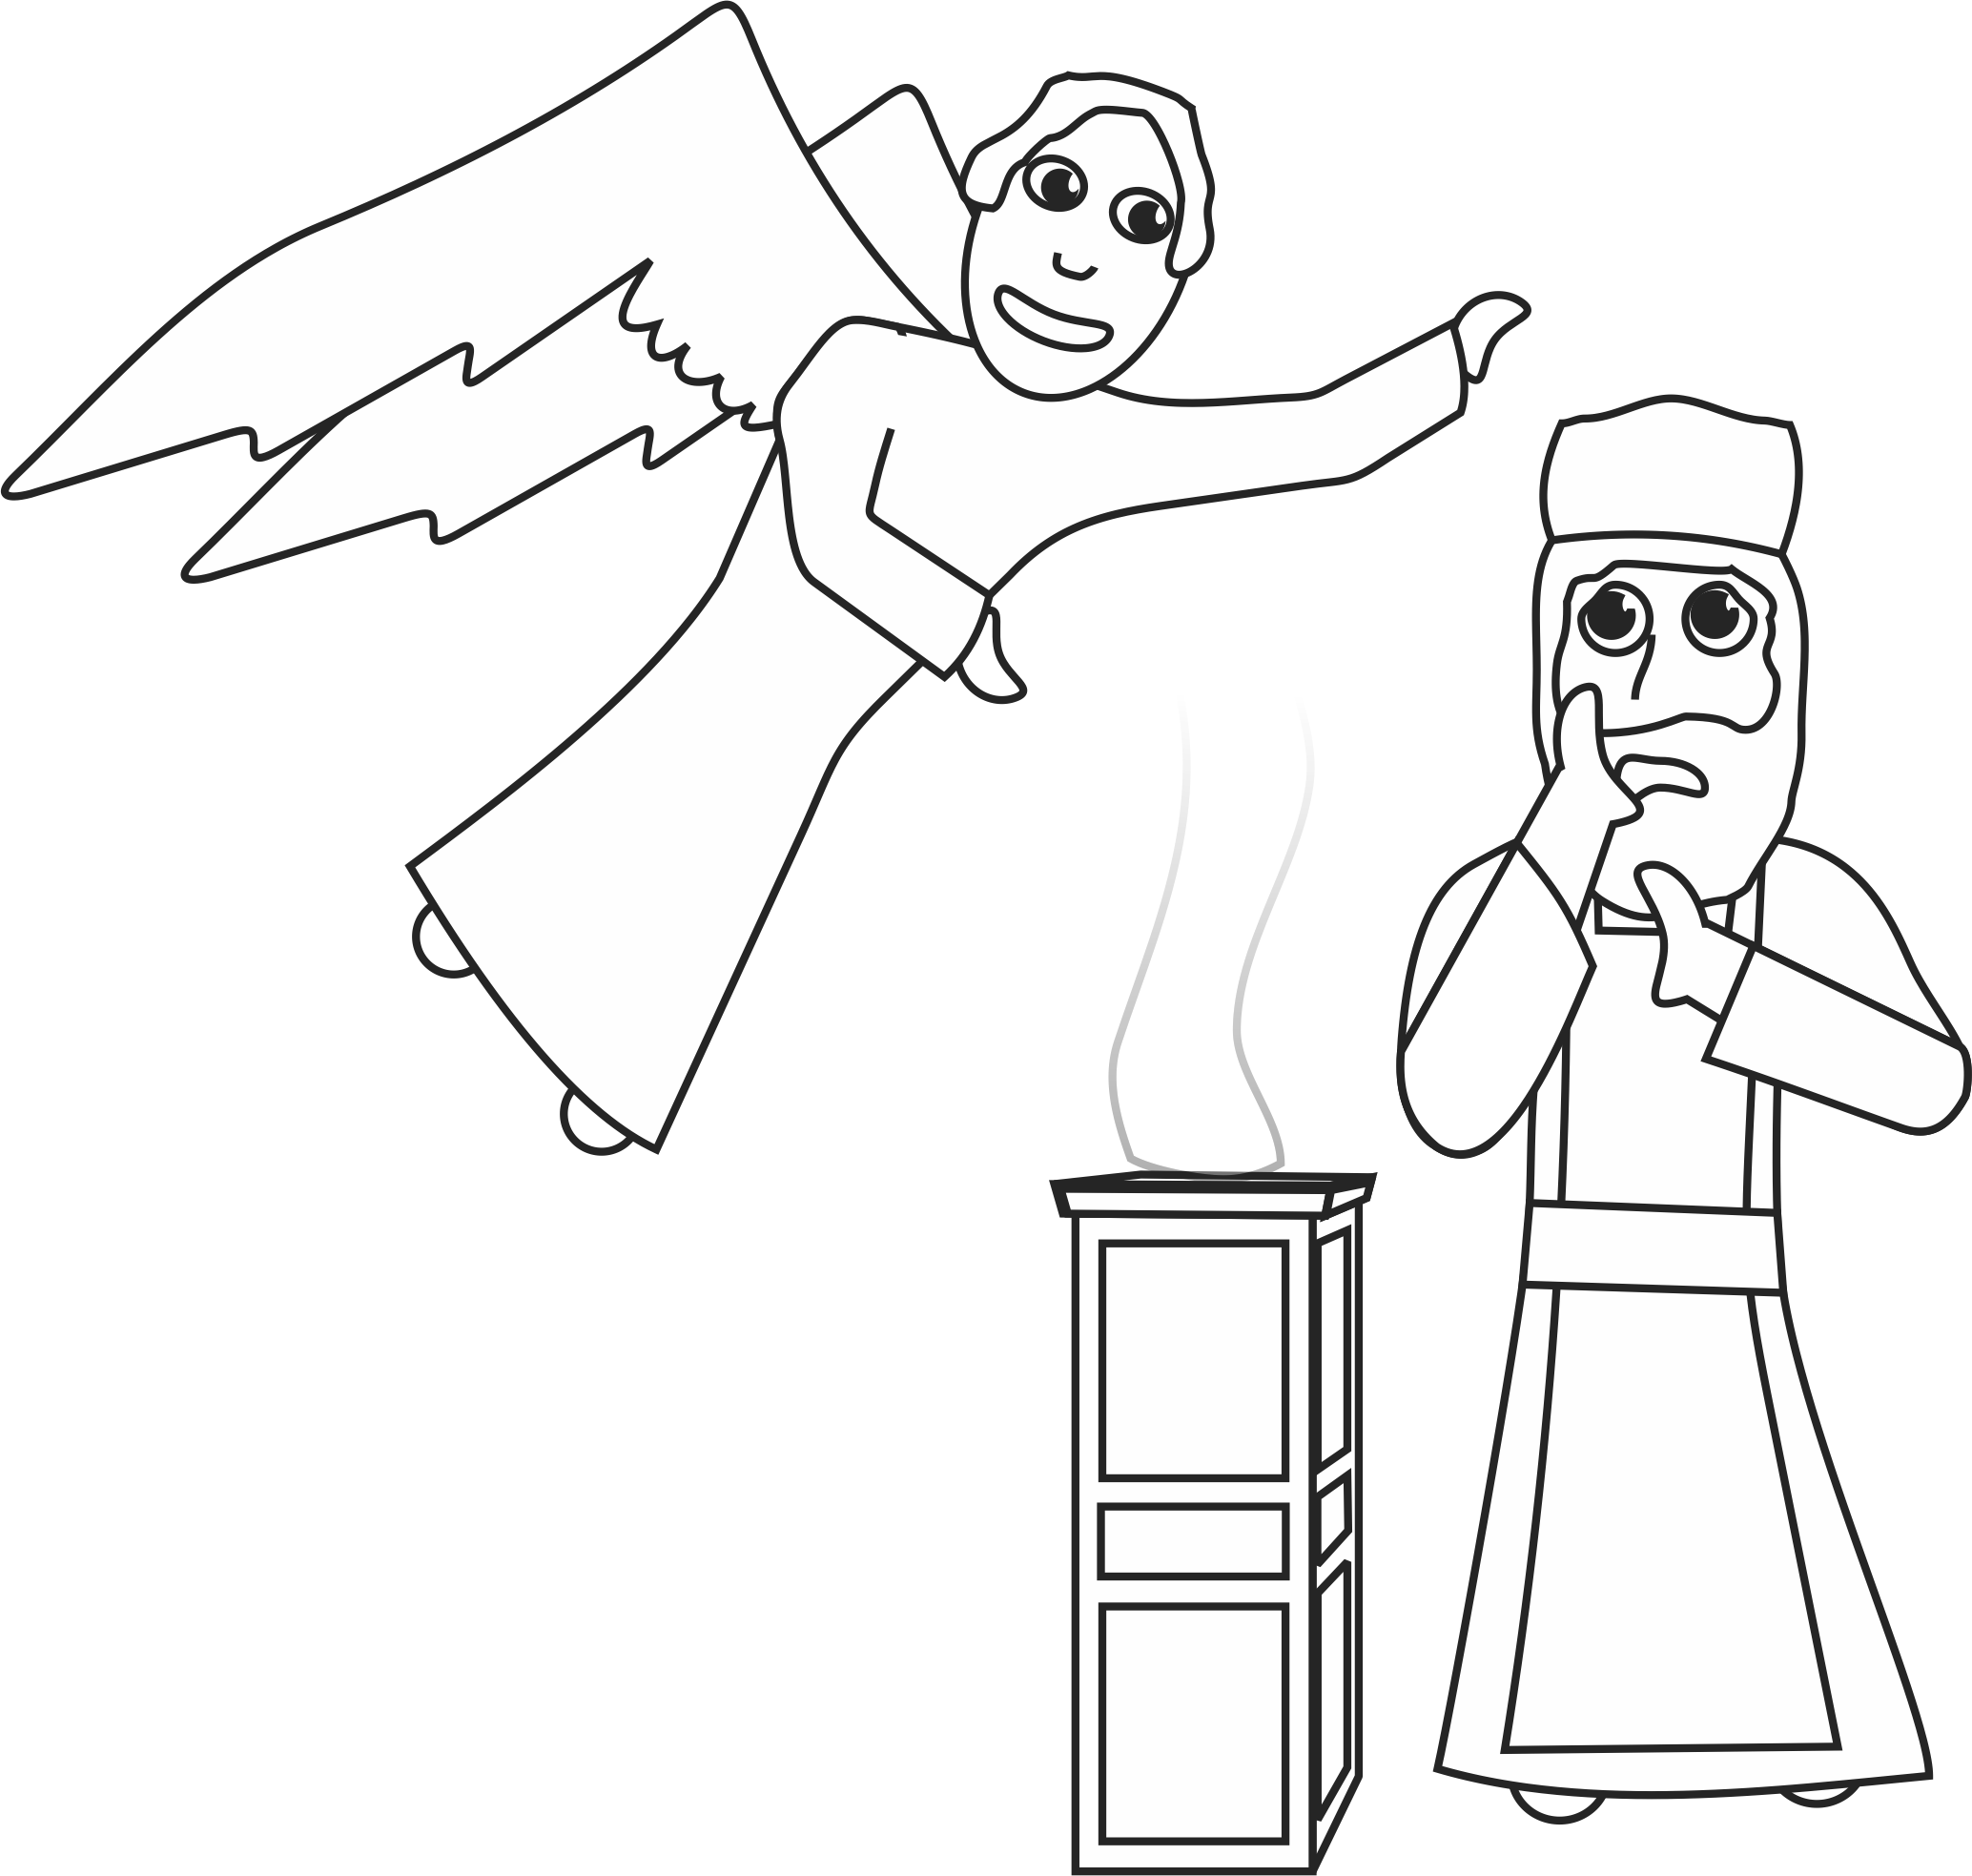 elizabeth and zechariah coloring pages my children39s curriculum elizabeth and zechariah coloring and elizabeth pages zechariah